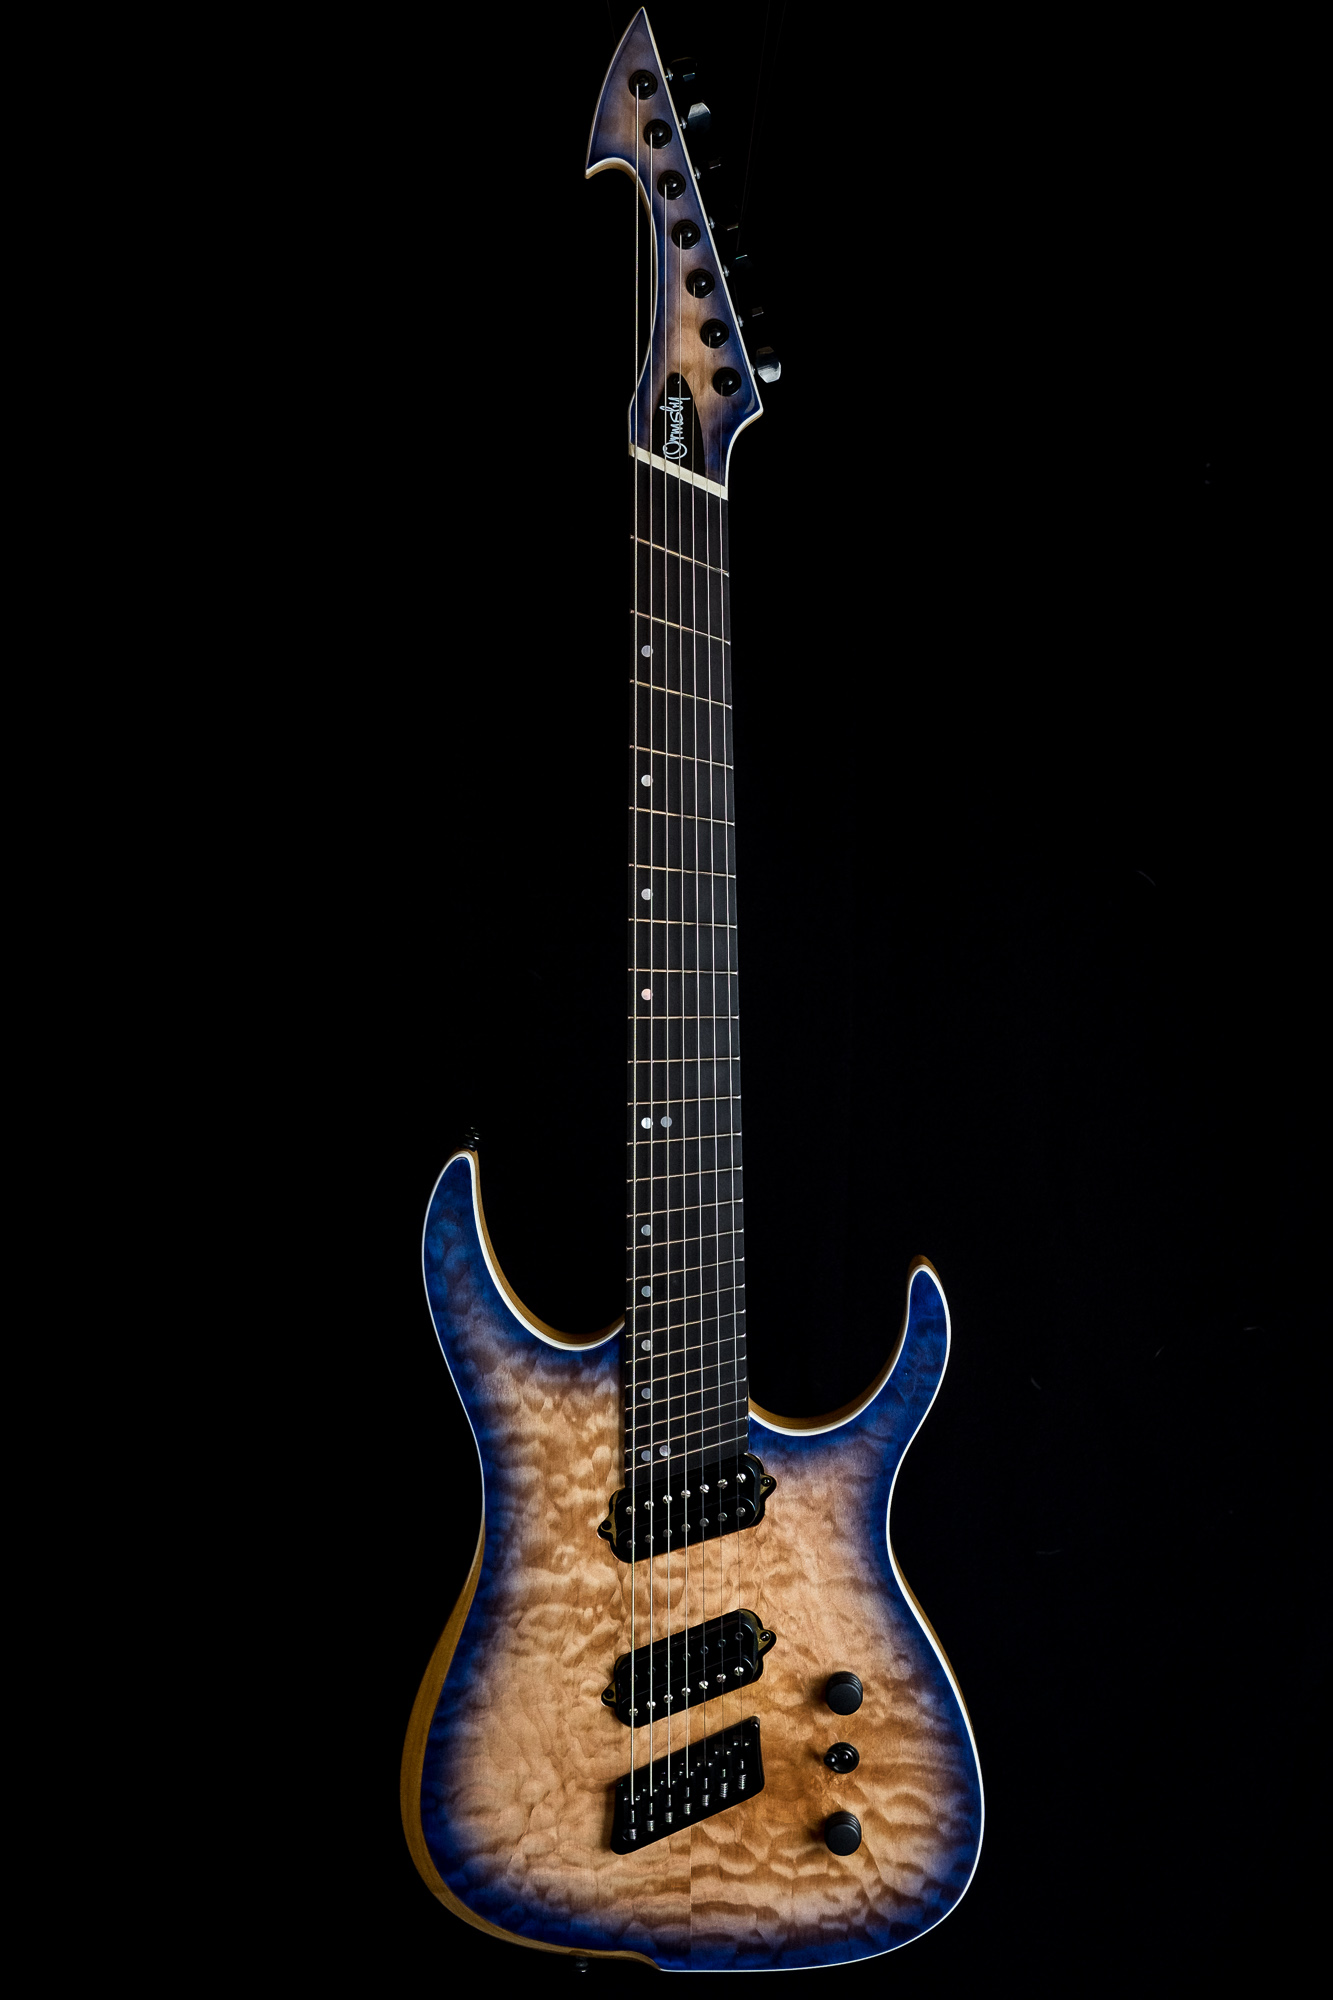 Ormsby GTR Run 2 Hype Blue Burst.jpg